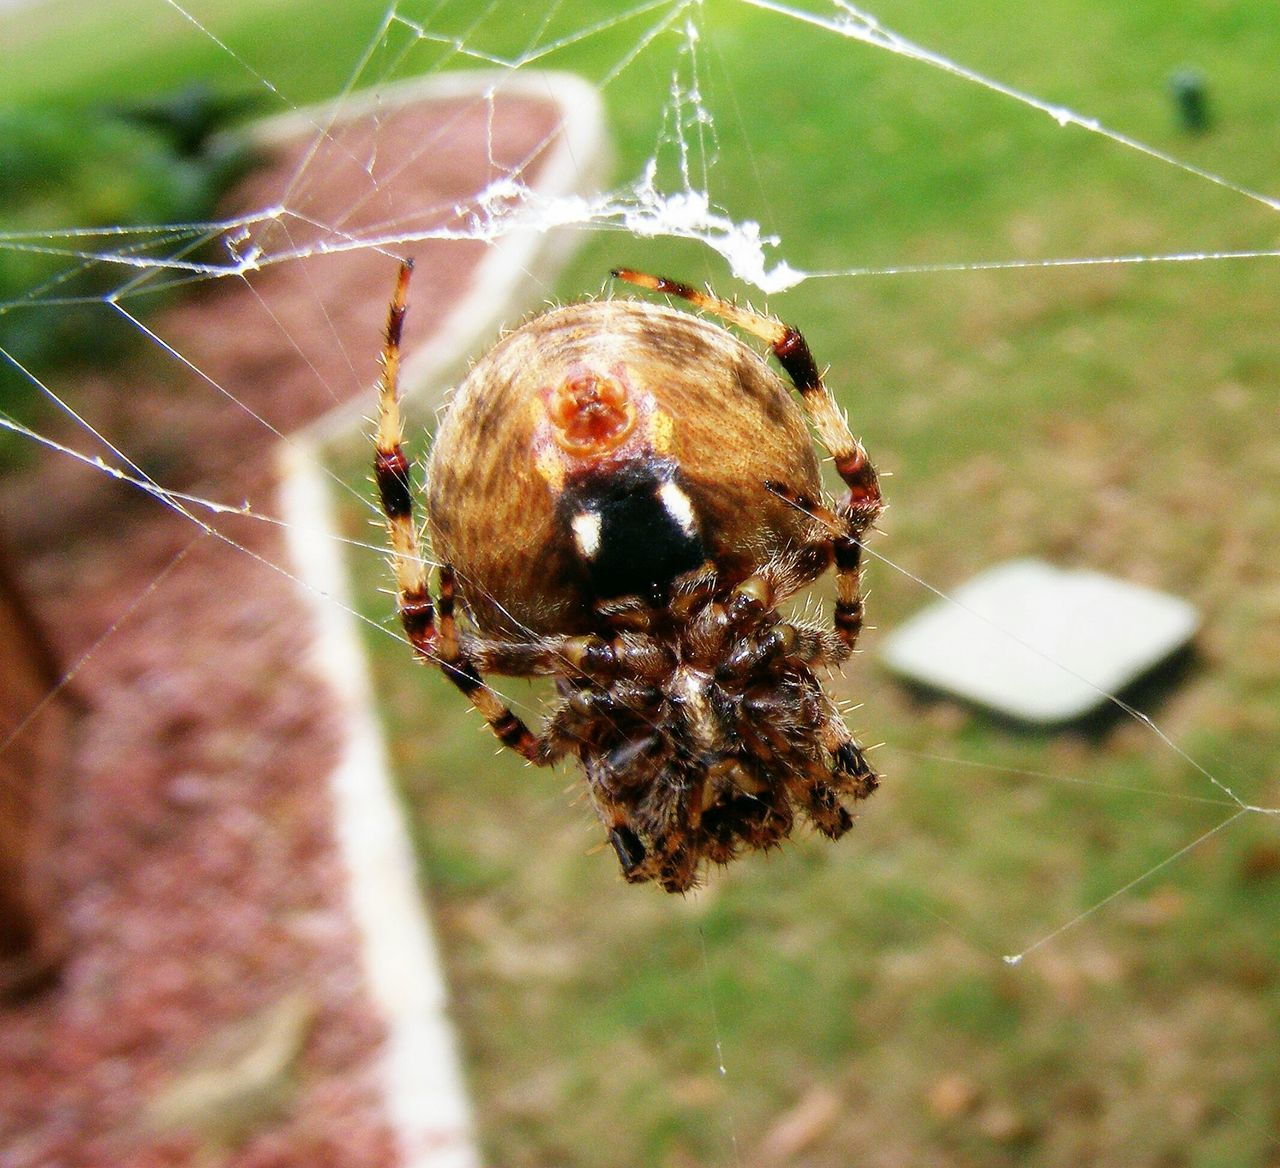 Good View of Its Spinneret , Spider Trying to Stay Warm Animal Wildlife Arachnid Arachnophobia Beauty In Nature Close-up Focus On Foreground Intricacy Macro Beauty Spider Spider Web Spiderworld